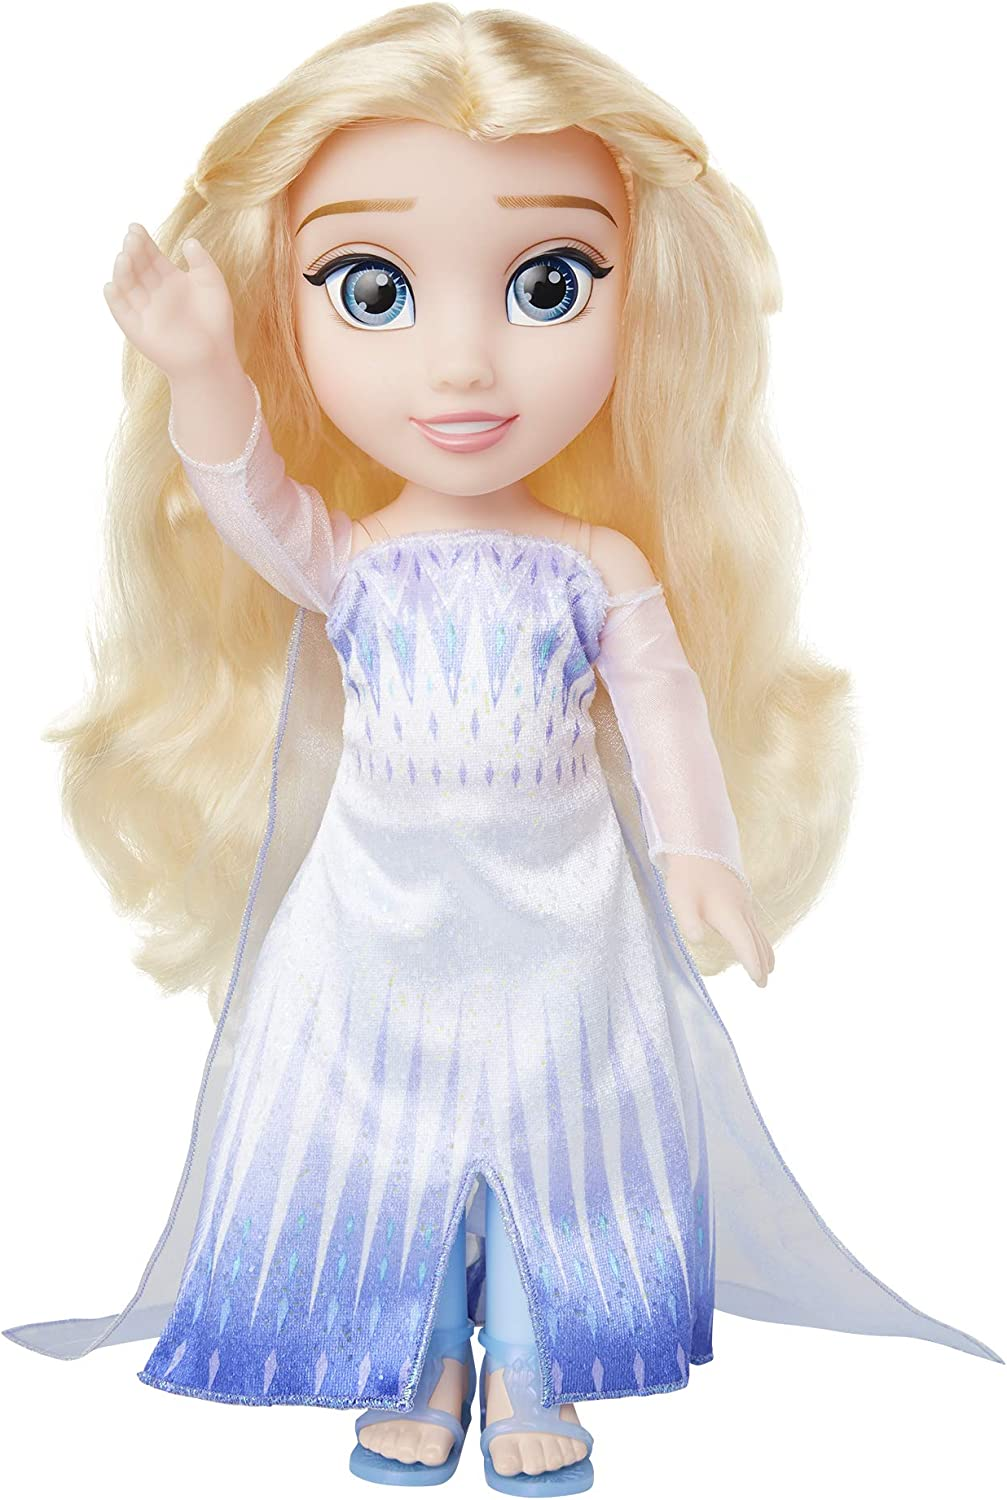 Amazon Com Disney Frozen 2 Elsa Doll Snow Queen Elsa Ionic Outfit Shoes 14 Inches Tall Toys Games